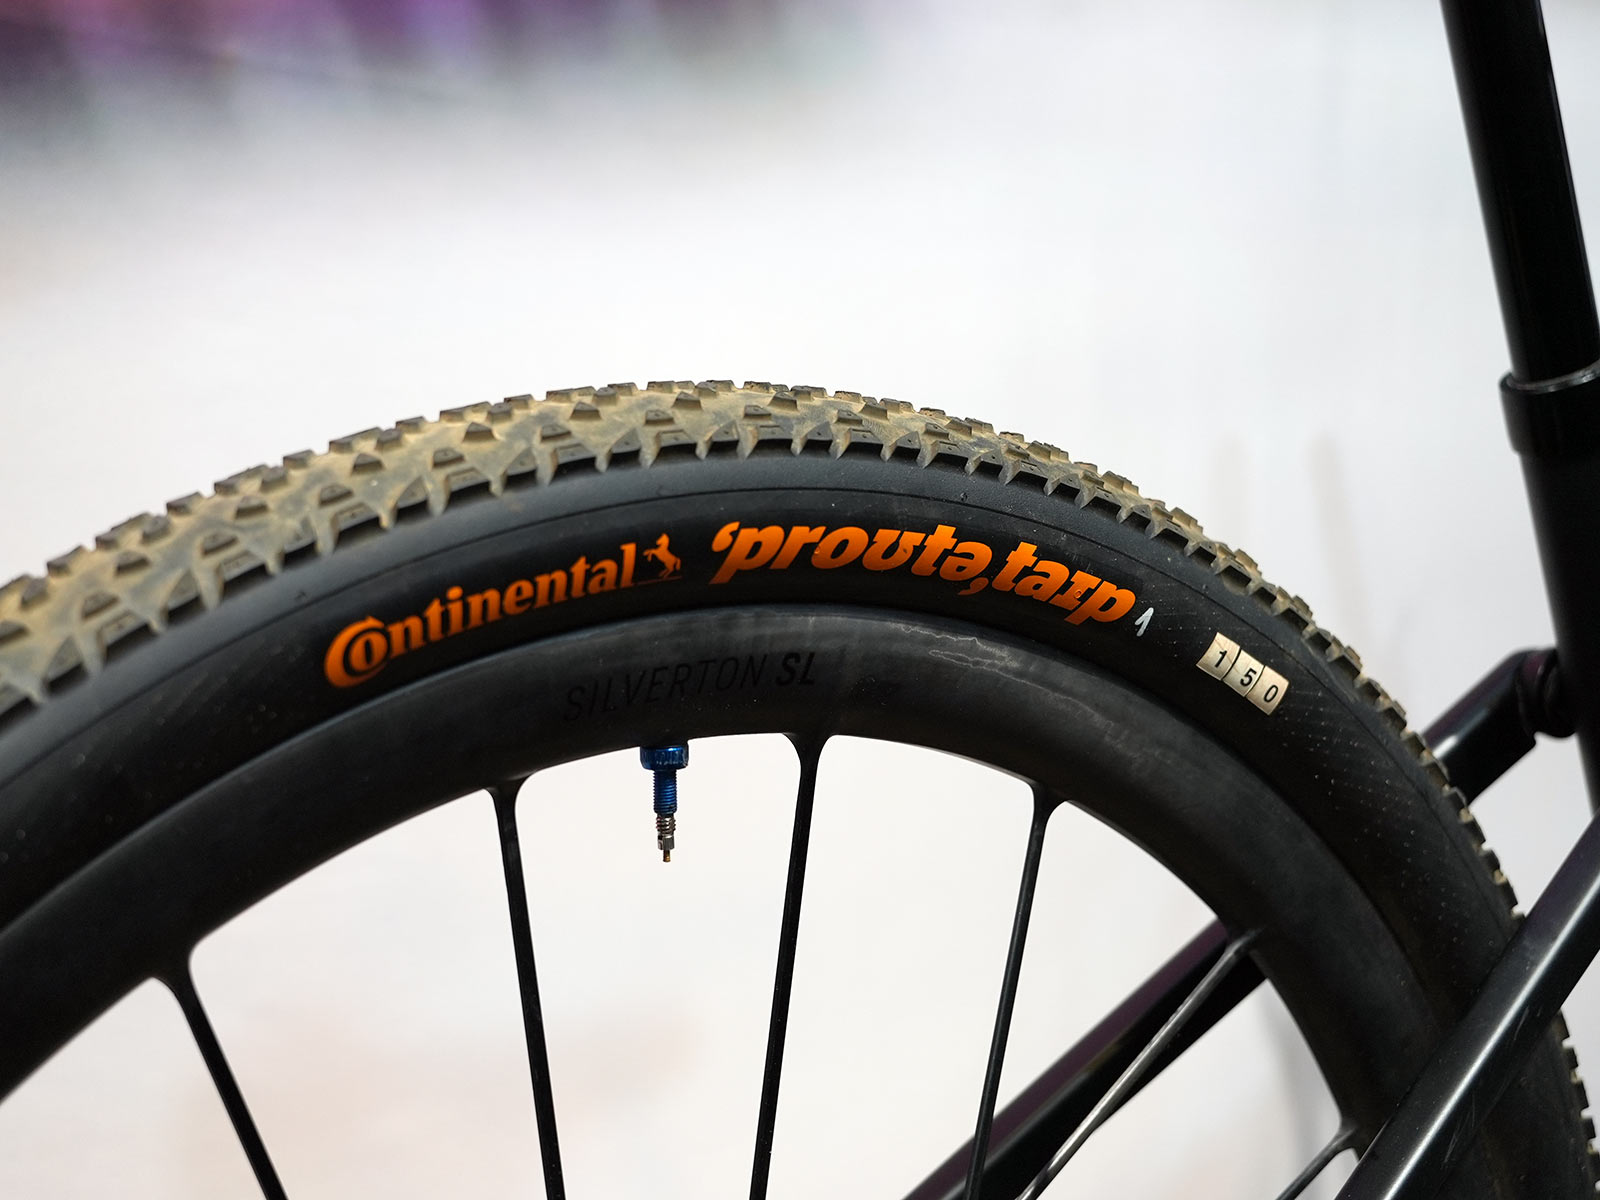 prototype continental 150 tpi mountain bike tires on tom pidcock's olympic MTB